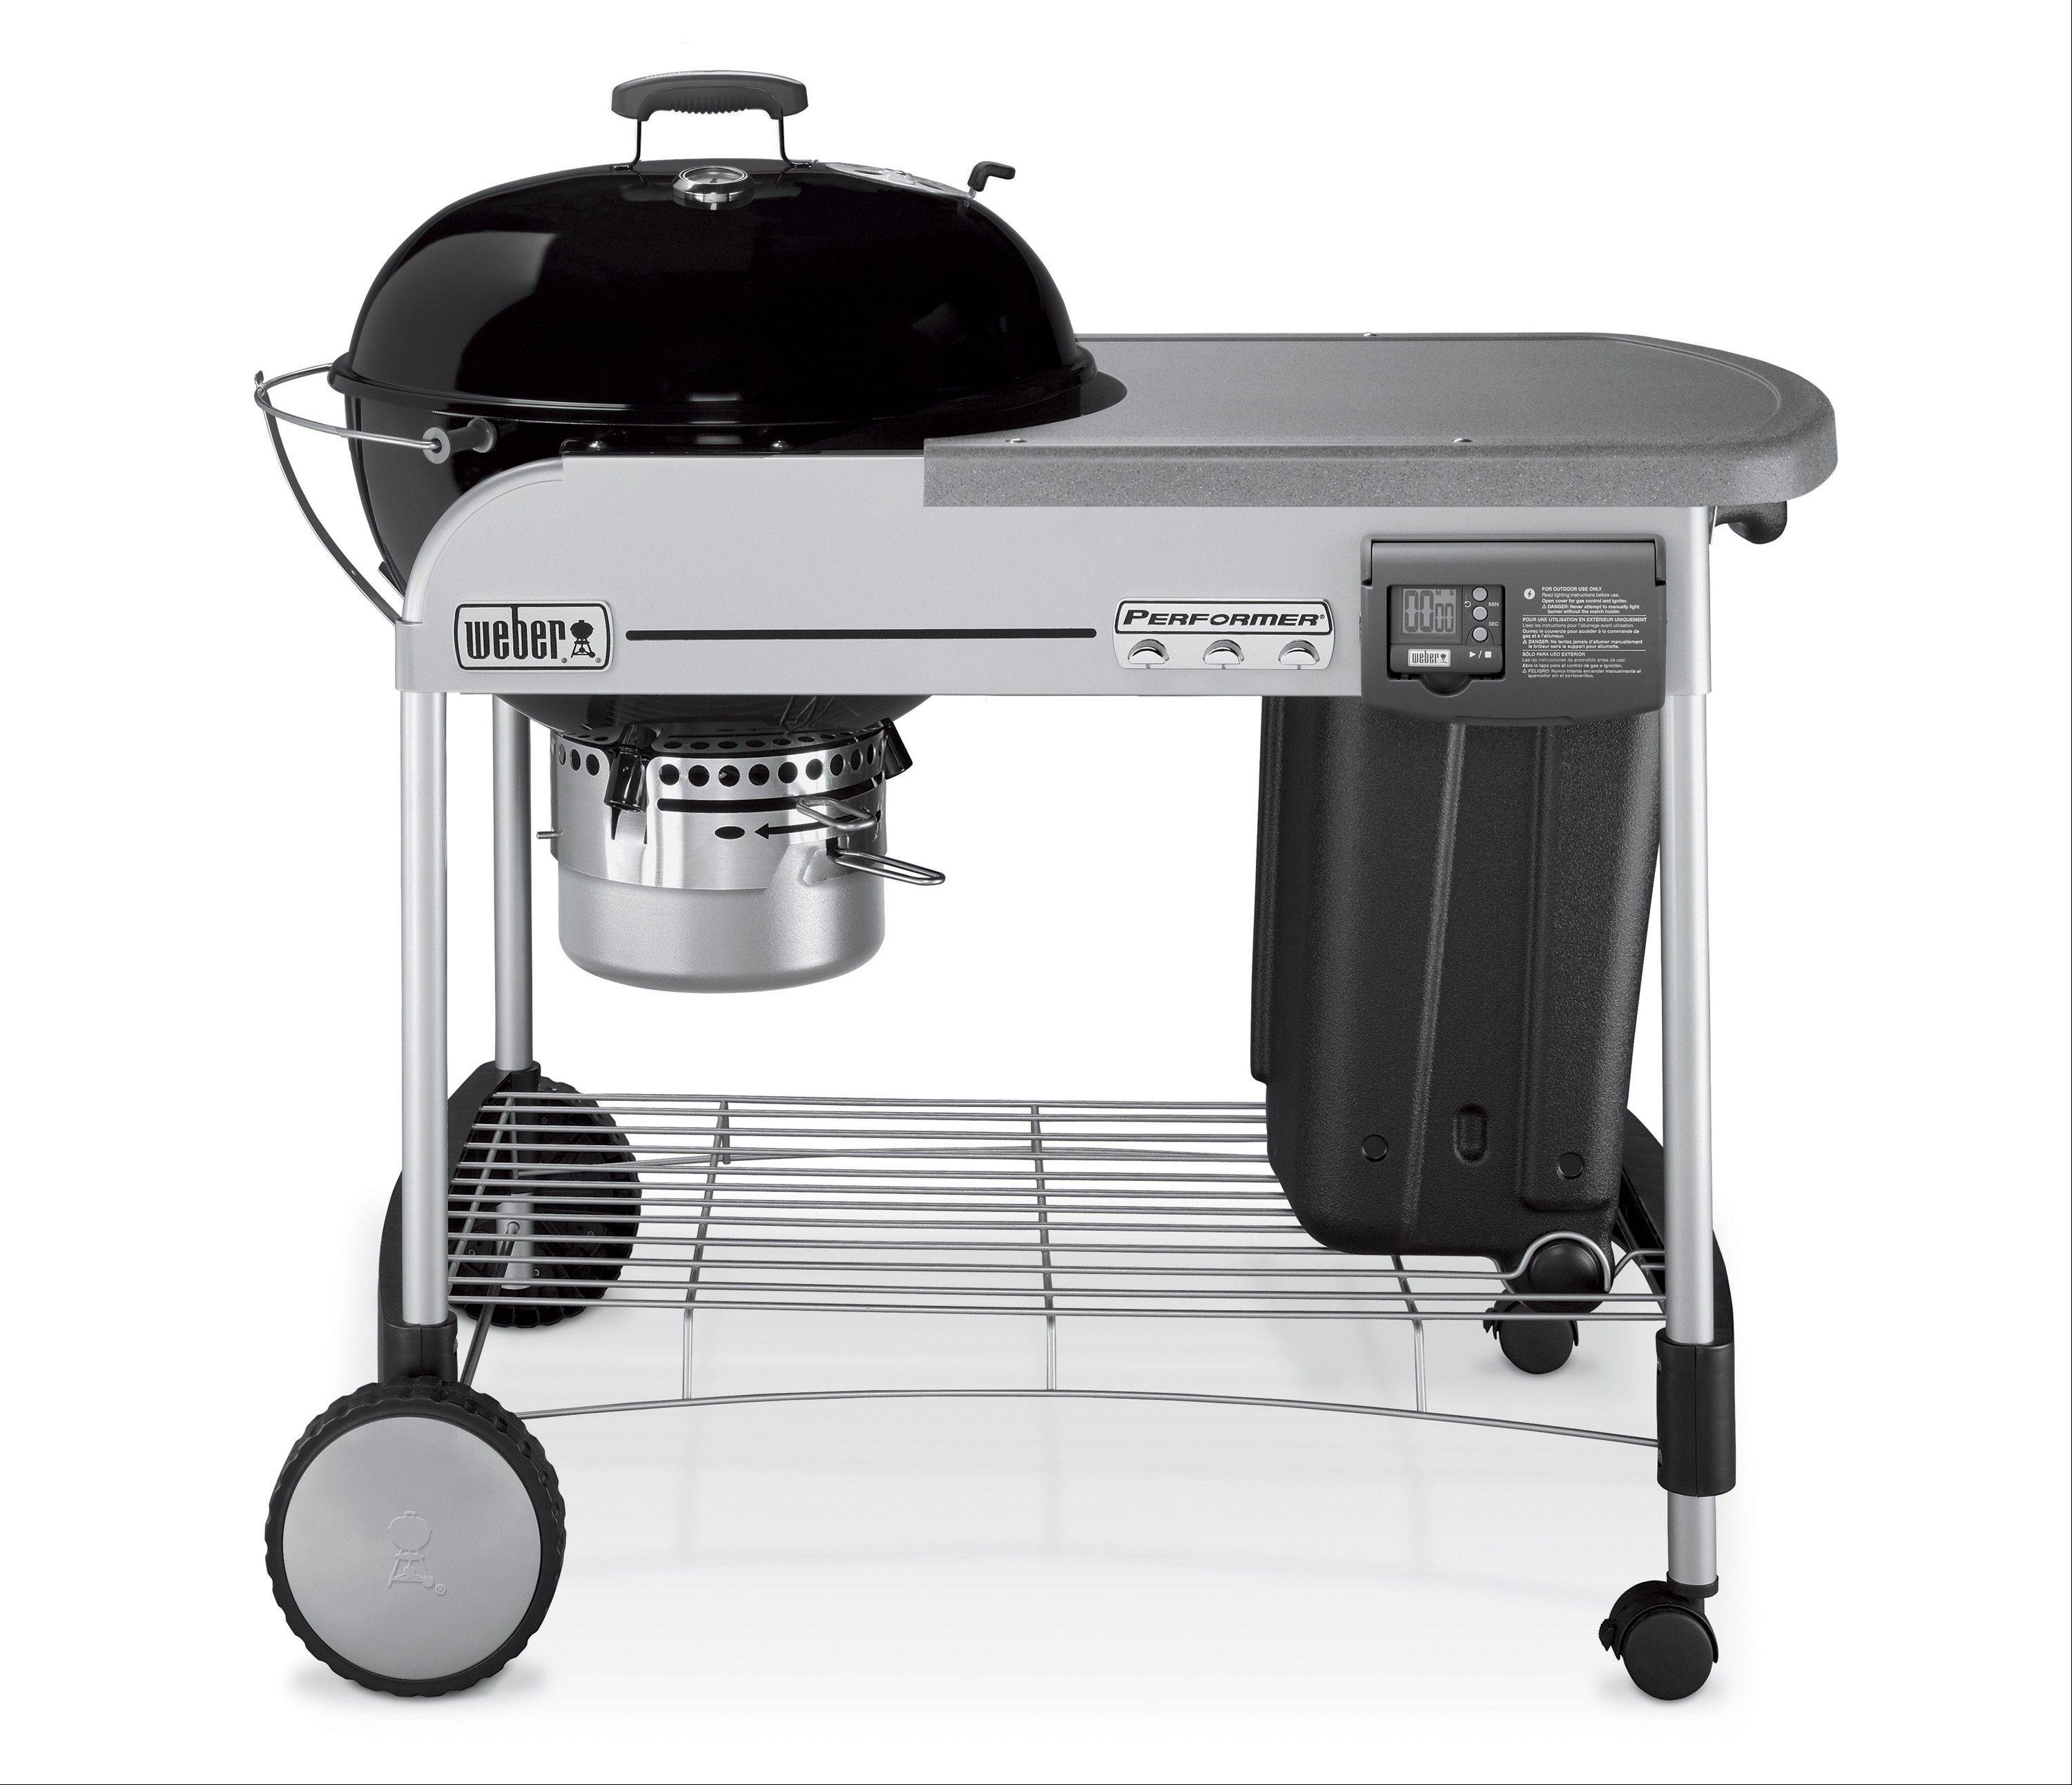 After judging seven grills on nine features, product testers with Cook's Illustrated magazine gave Weber's Performer Platinum Charcoal Grill its highest rating.